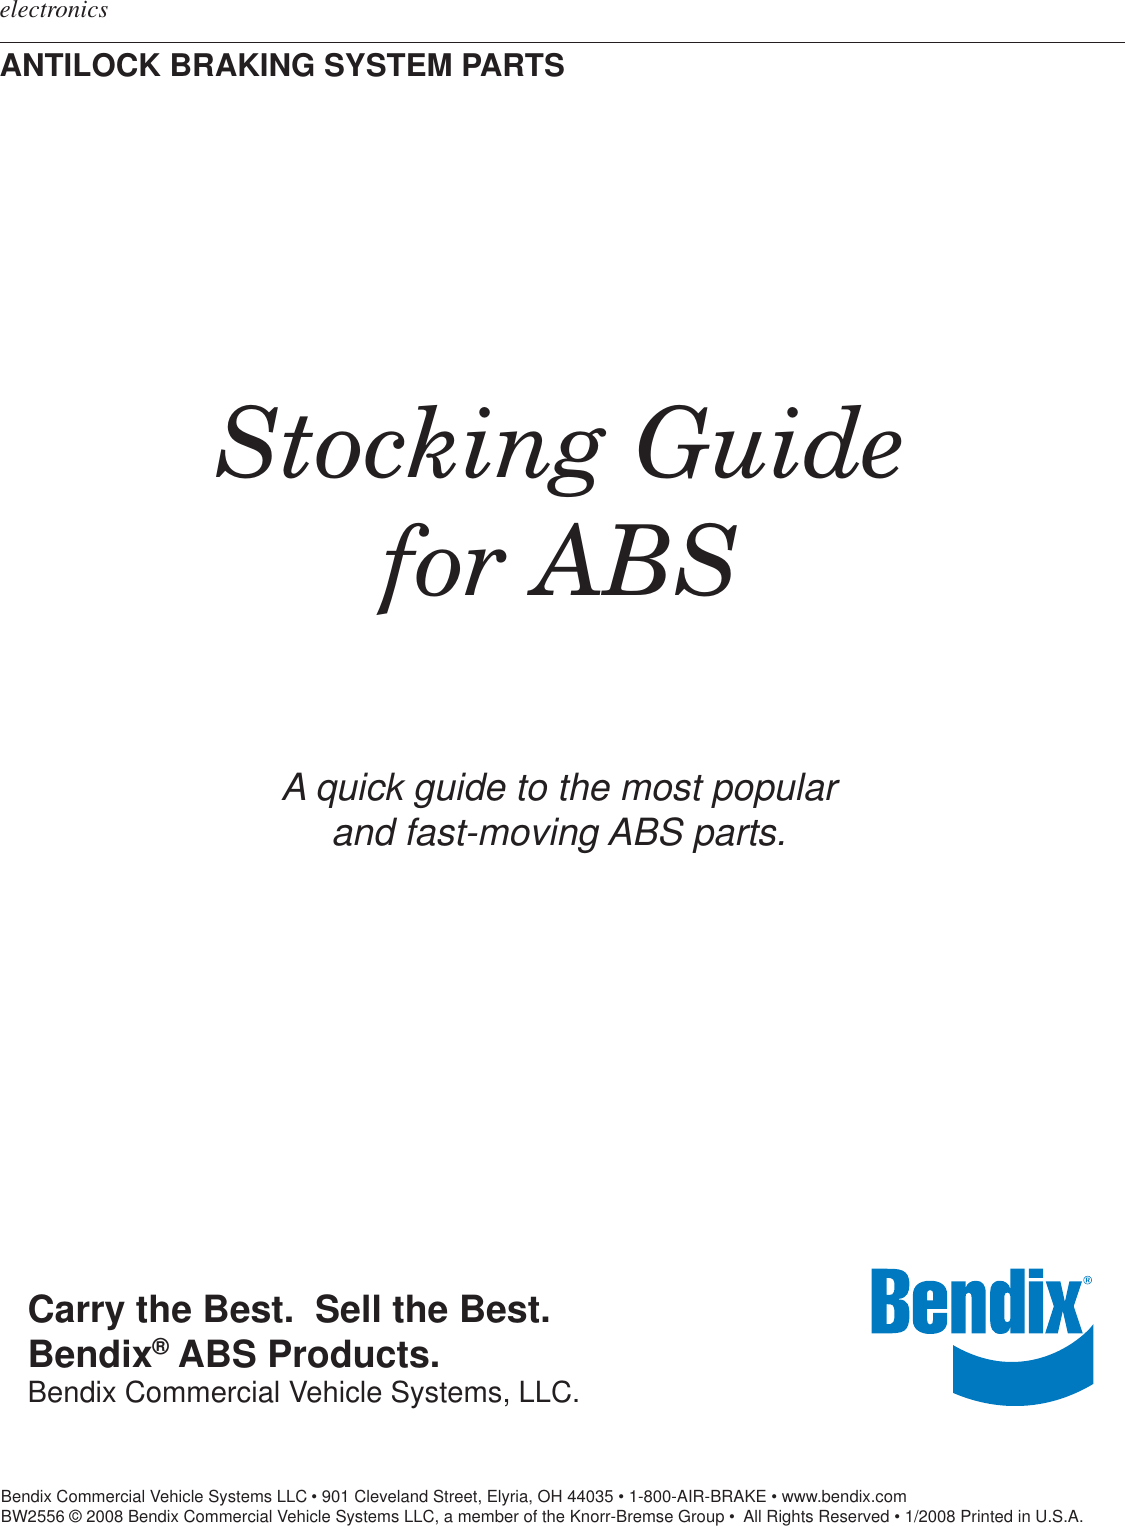 bendix 9 abs system